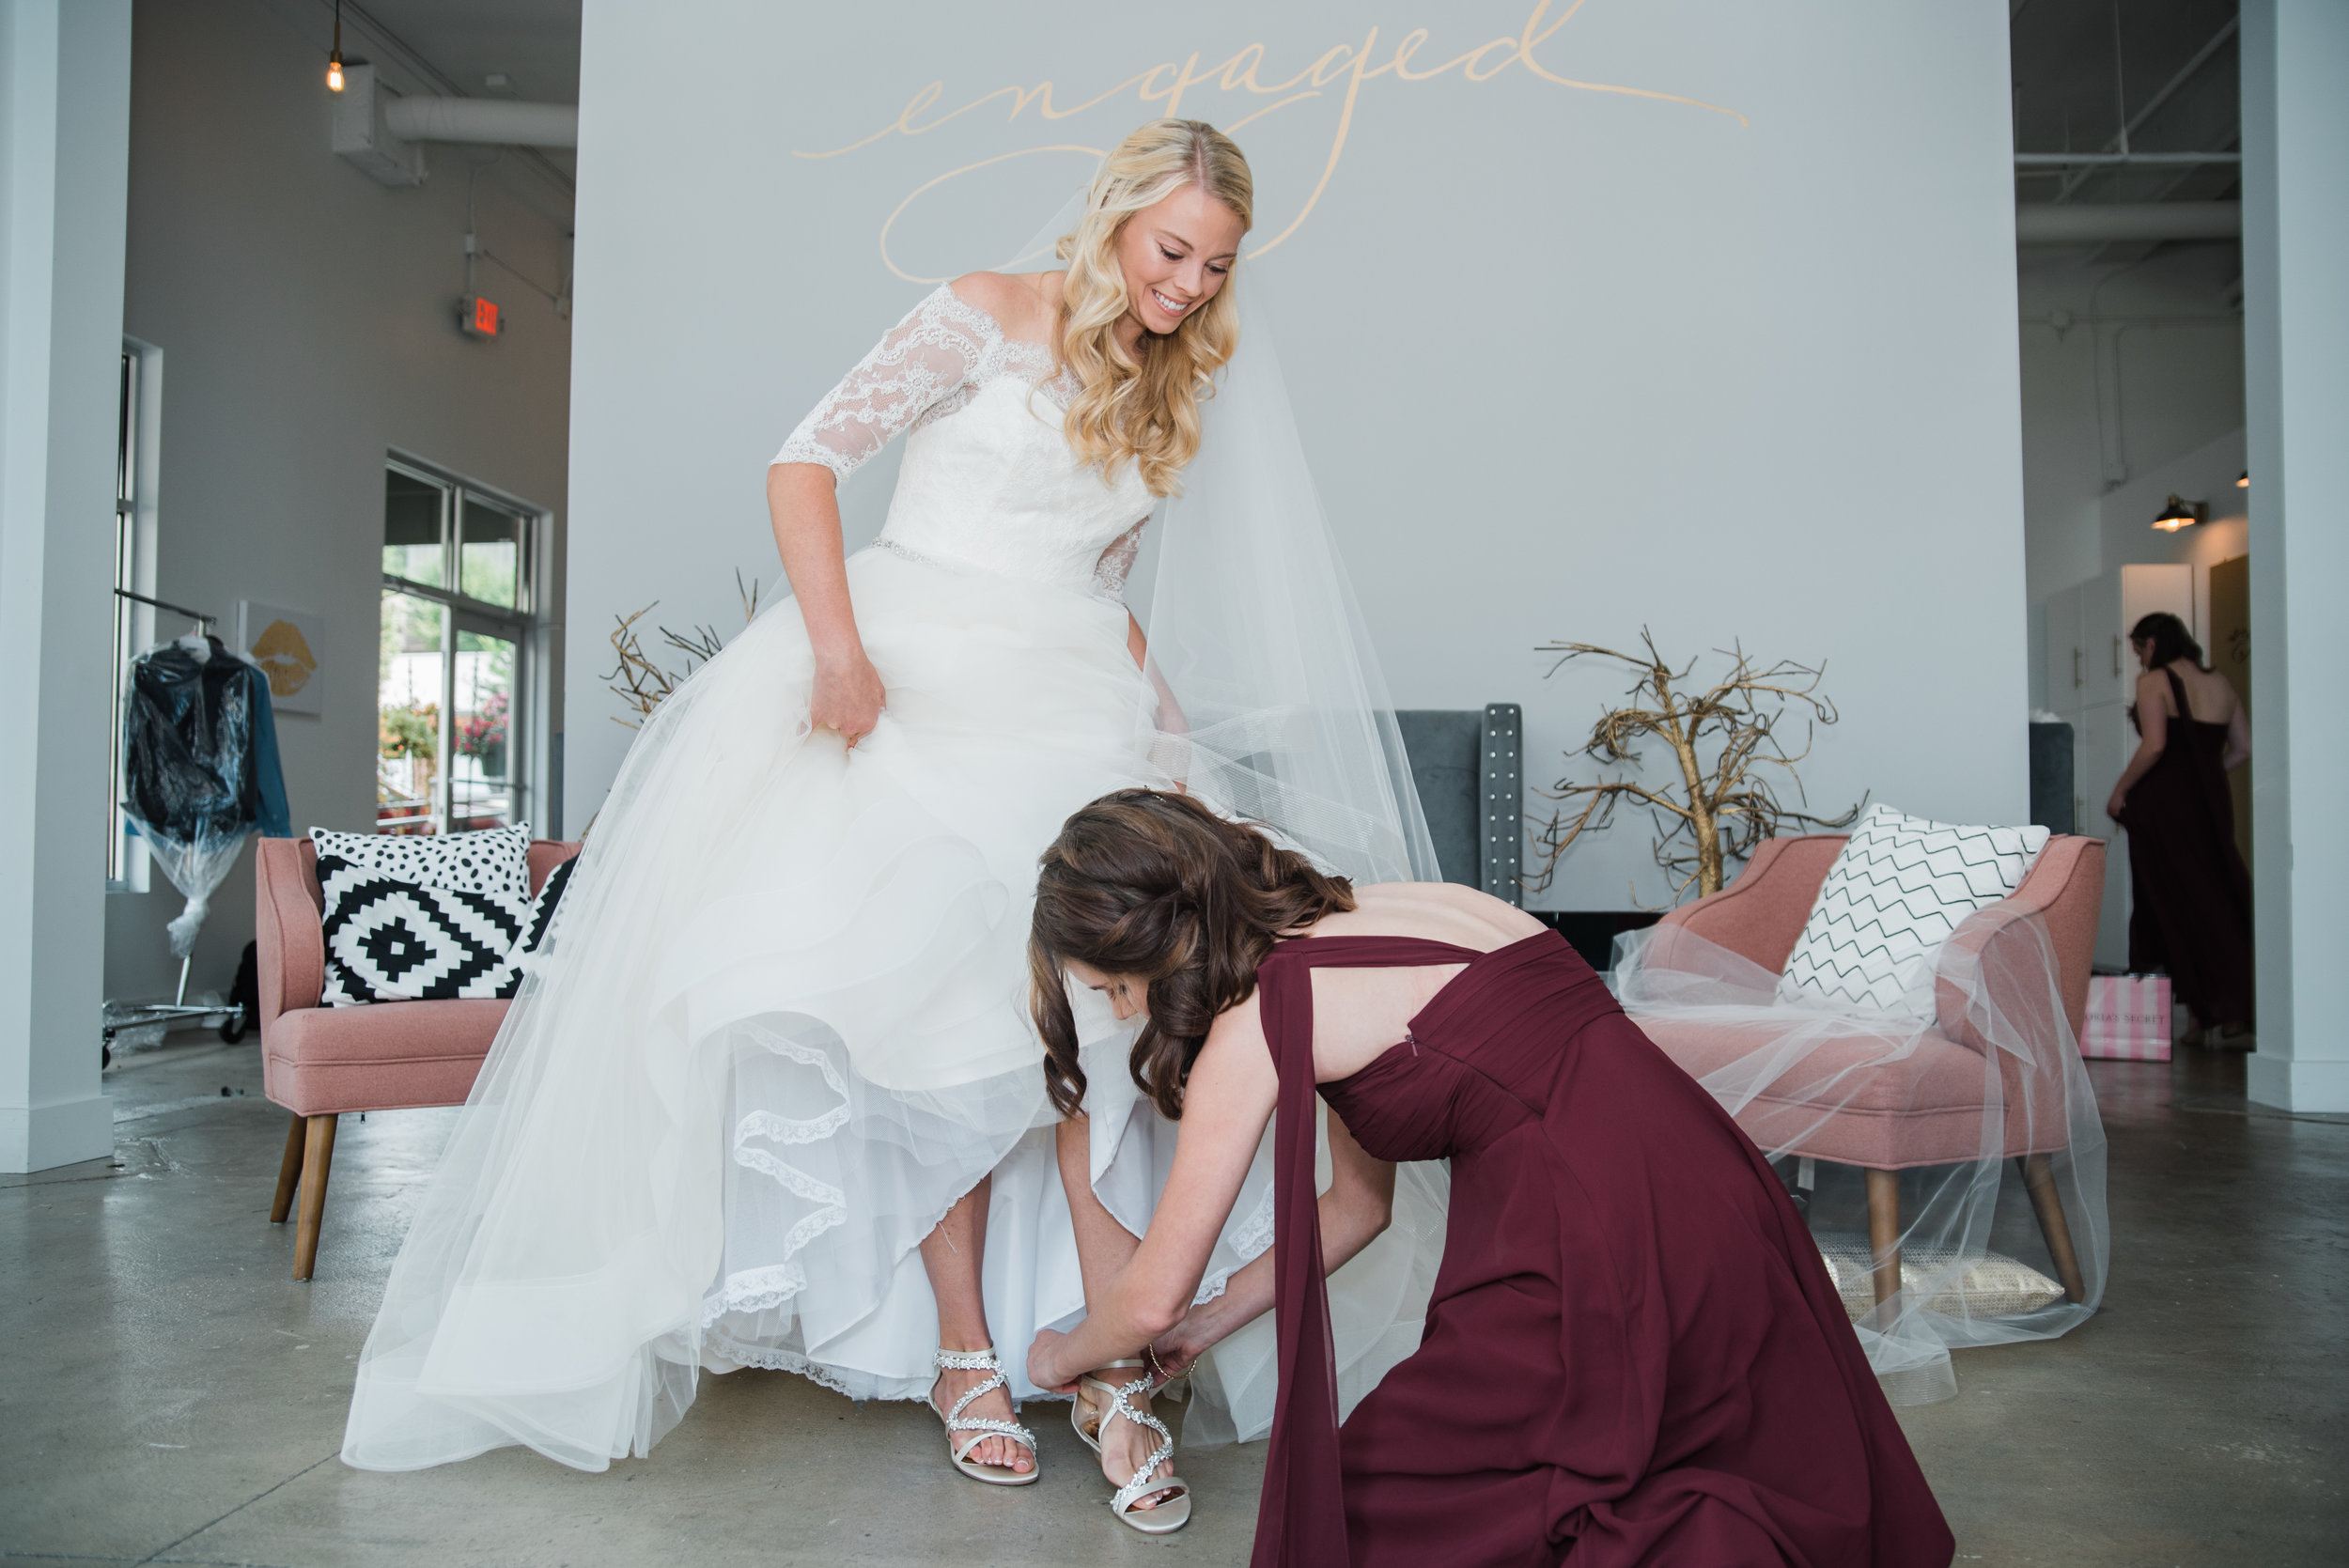 LaurenEric_Wedding_Getting Ready-115 putting on shoes.jpg